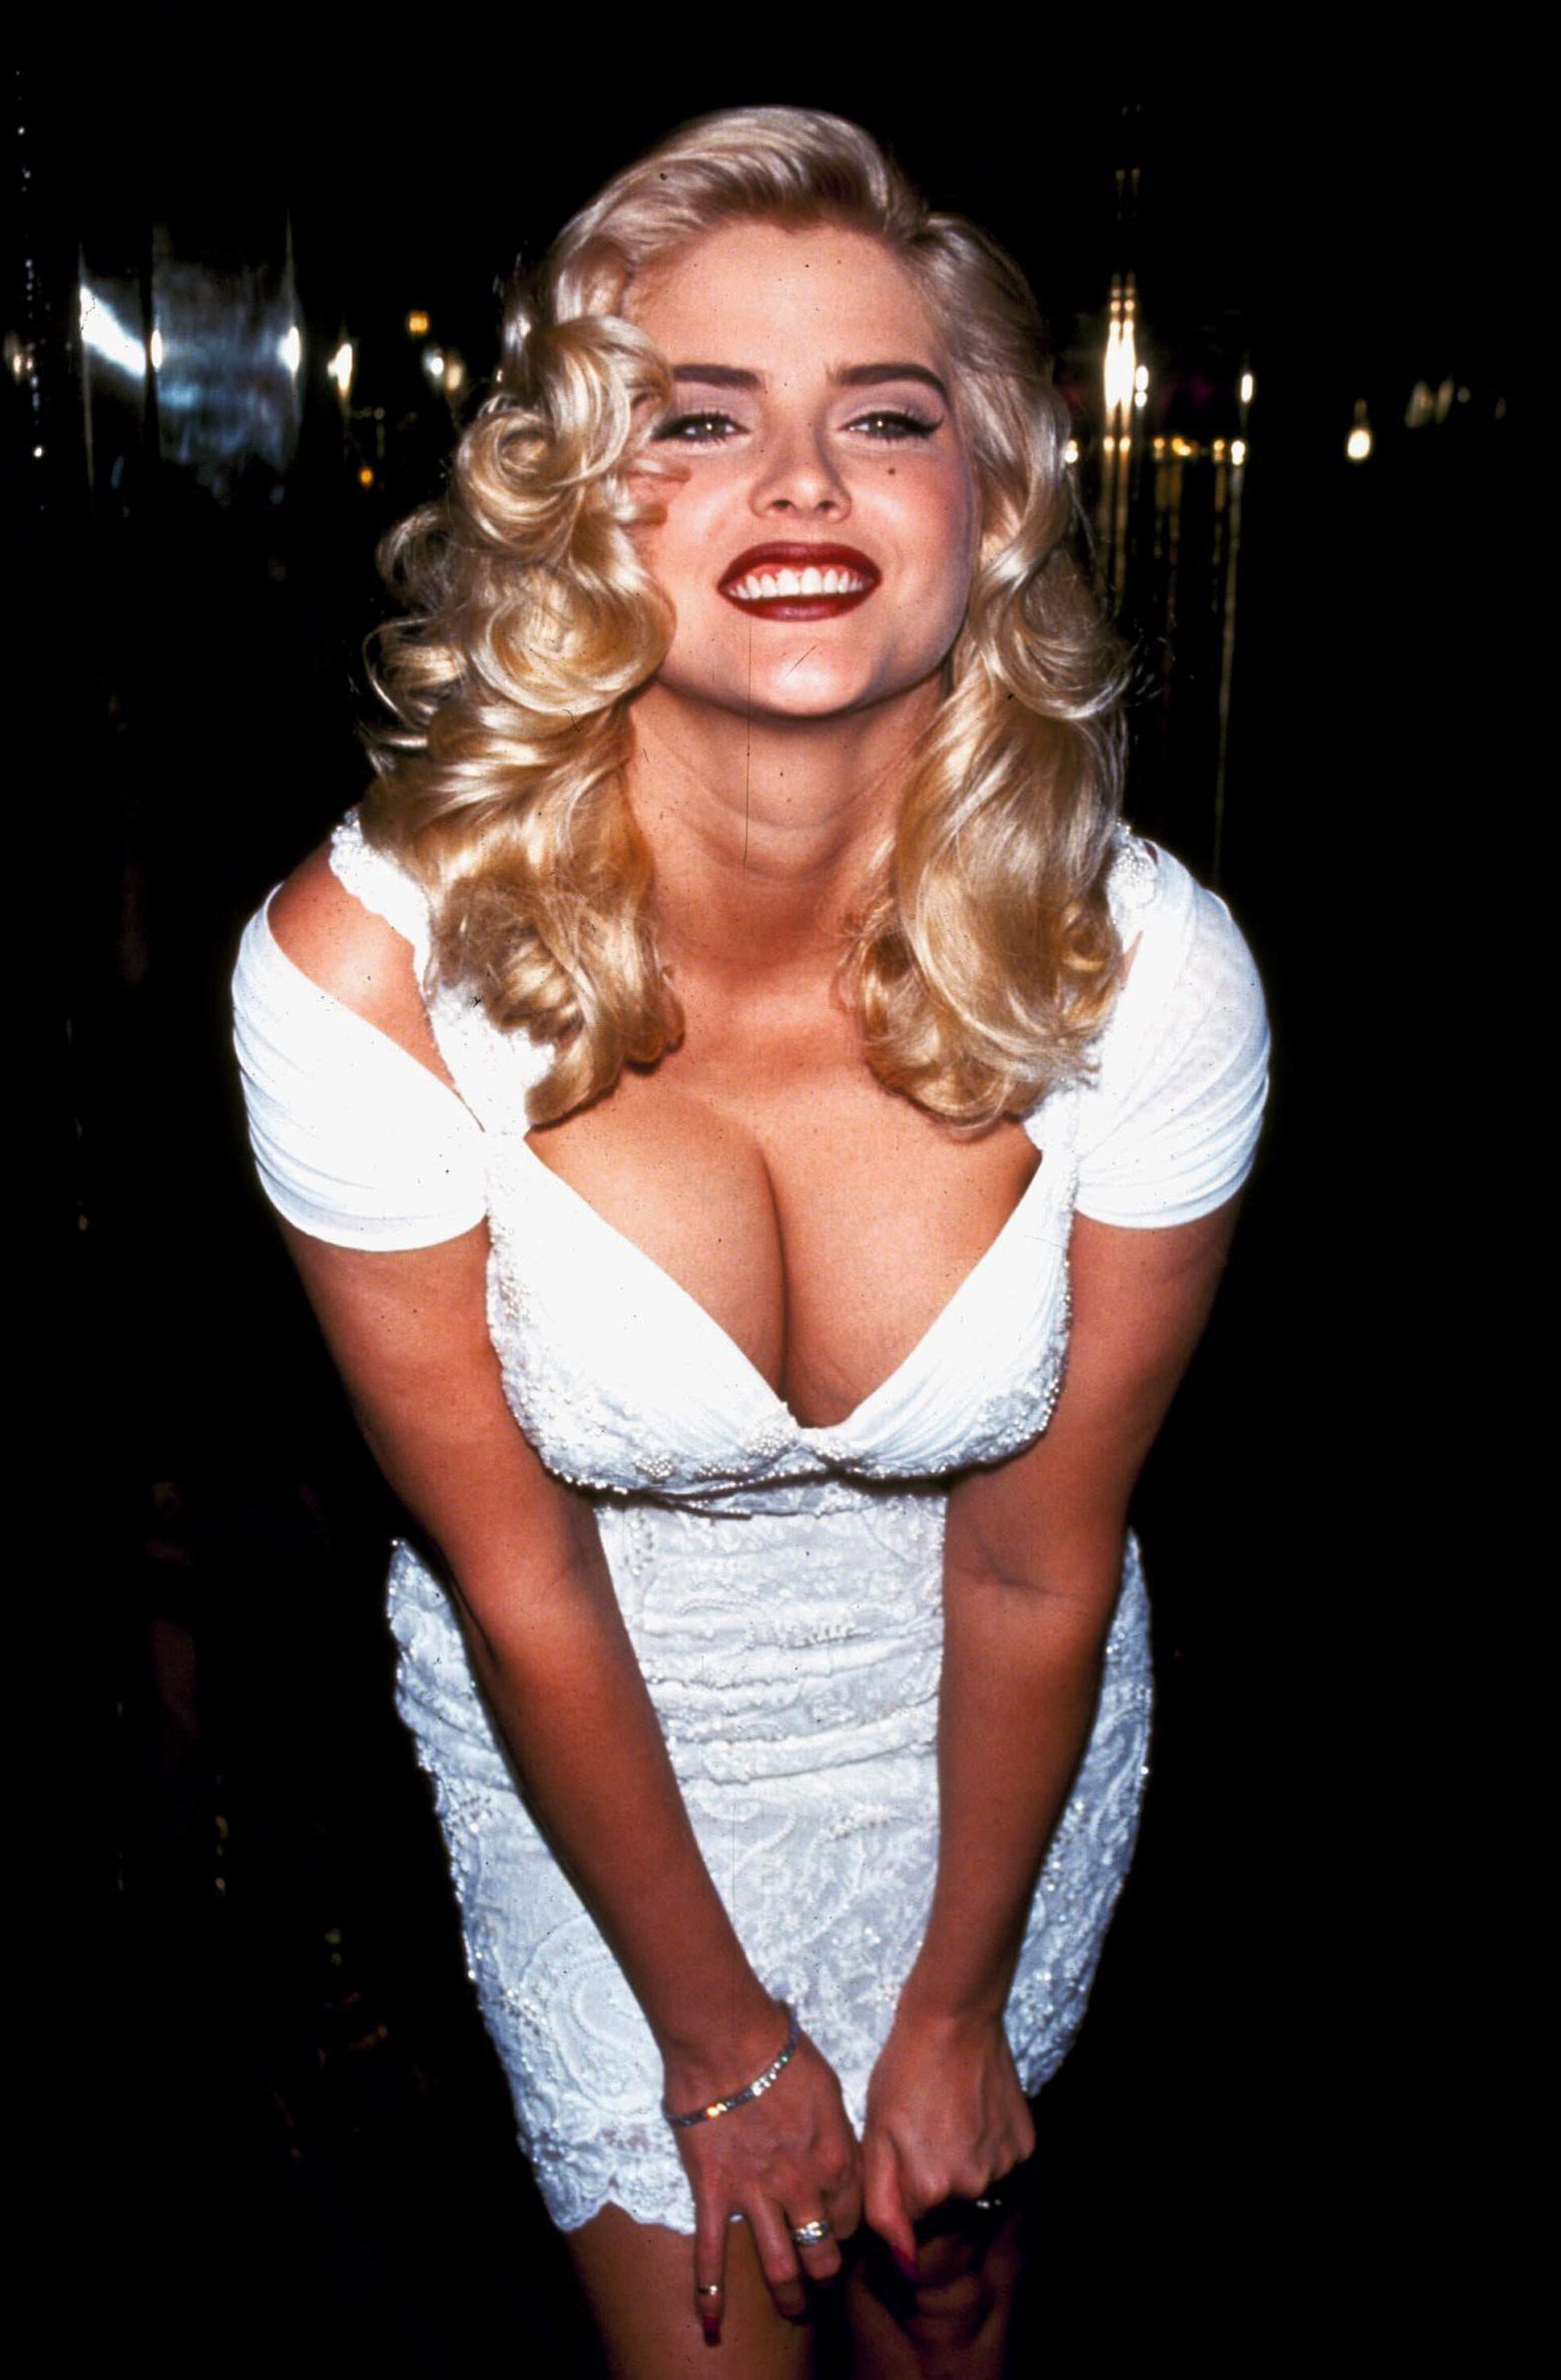 Anna nicole smith boob shot